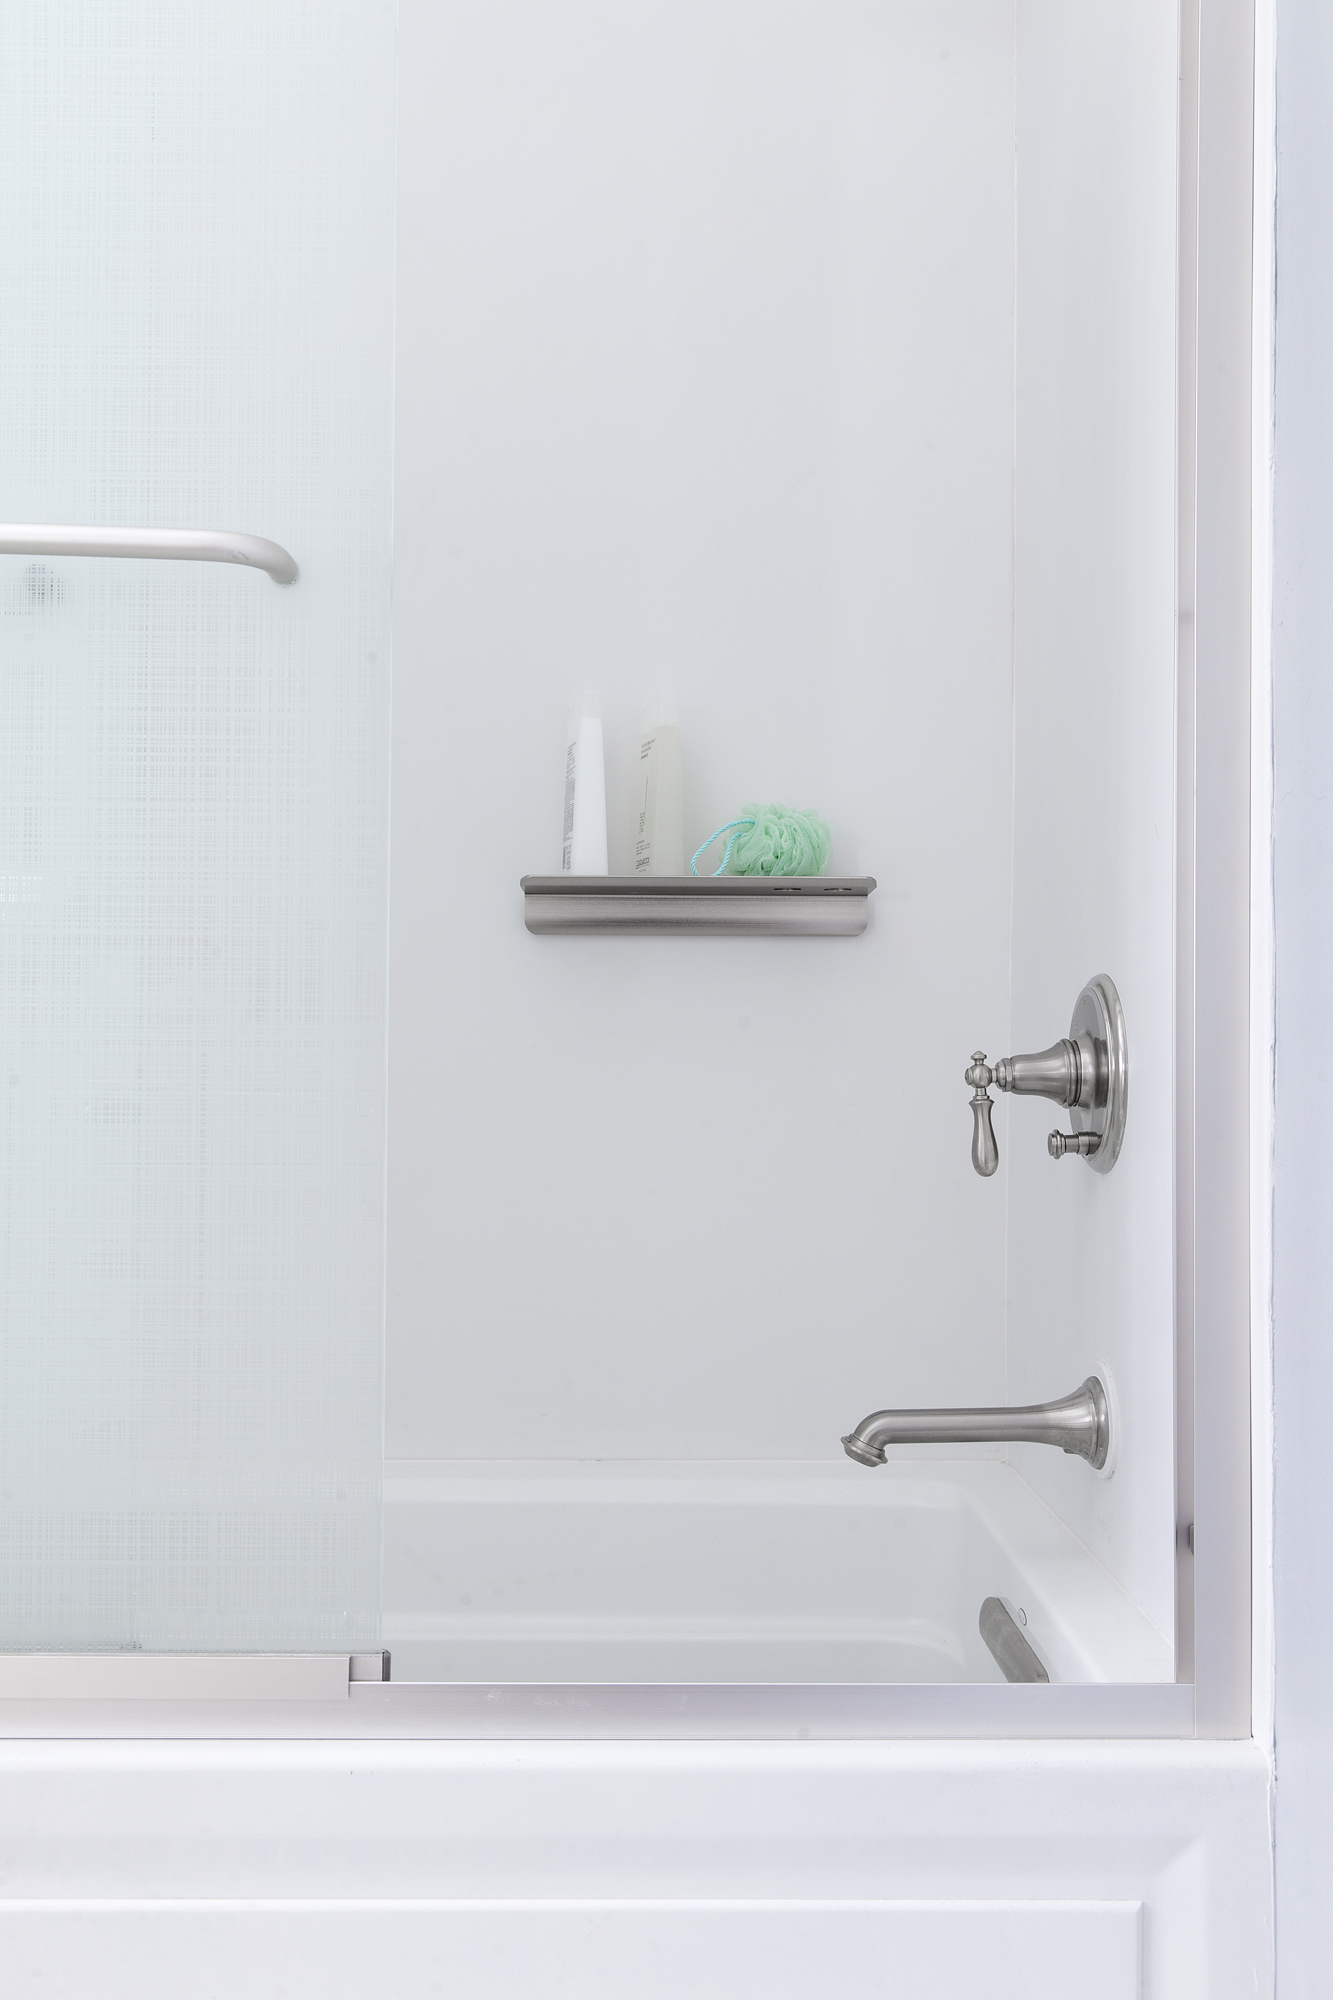 Choreograph® floating shelf     Choreograph shower wall kit     Artifacts® bath spout     Artifacts valve trim     Archer® alcove bath with Bask® heated surface     A low shelf designed for quick water drainage and easy cleaning helps organize the shower and puts things in reach for little ones.